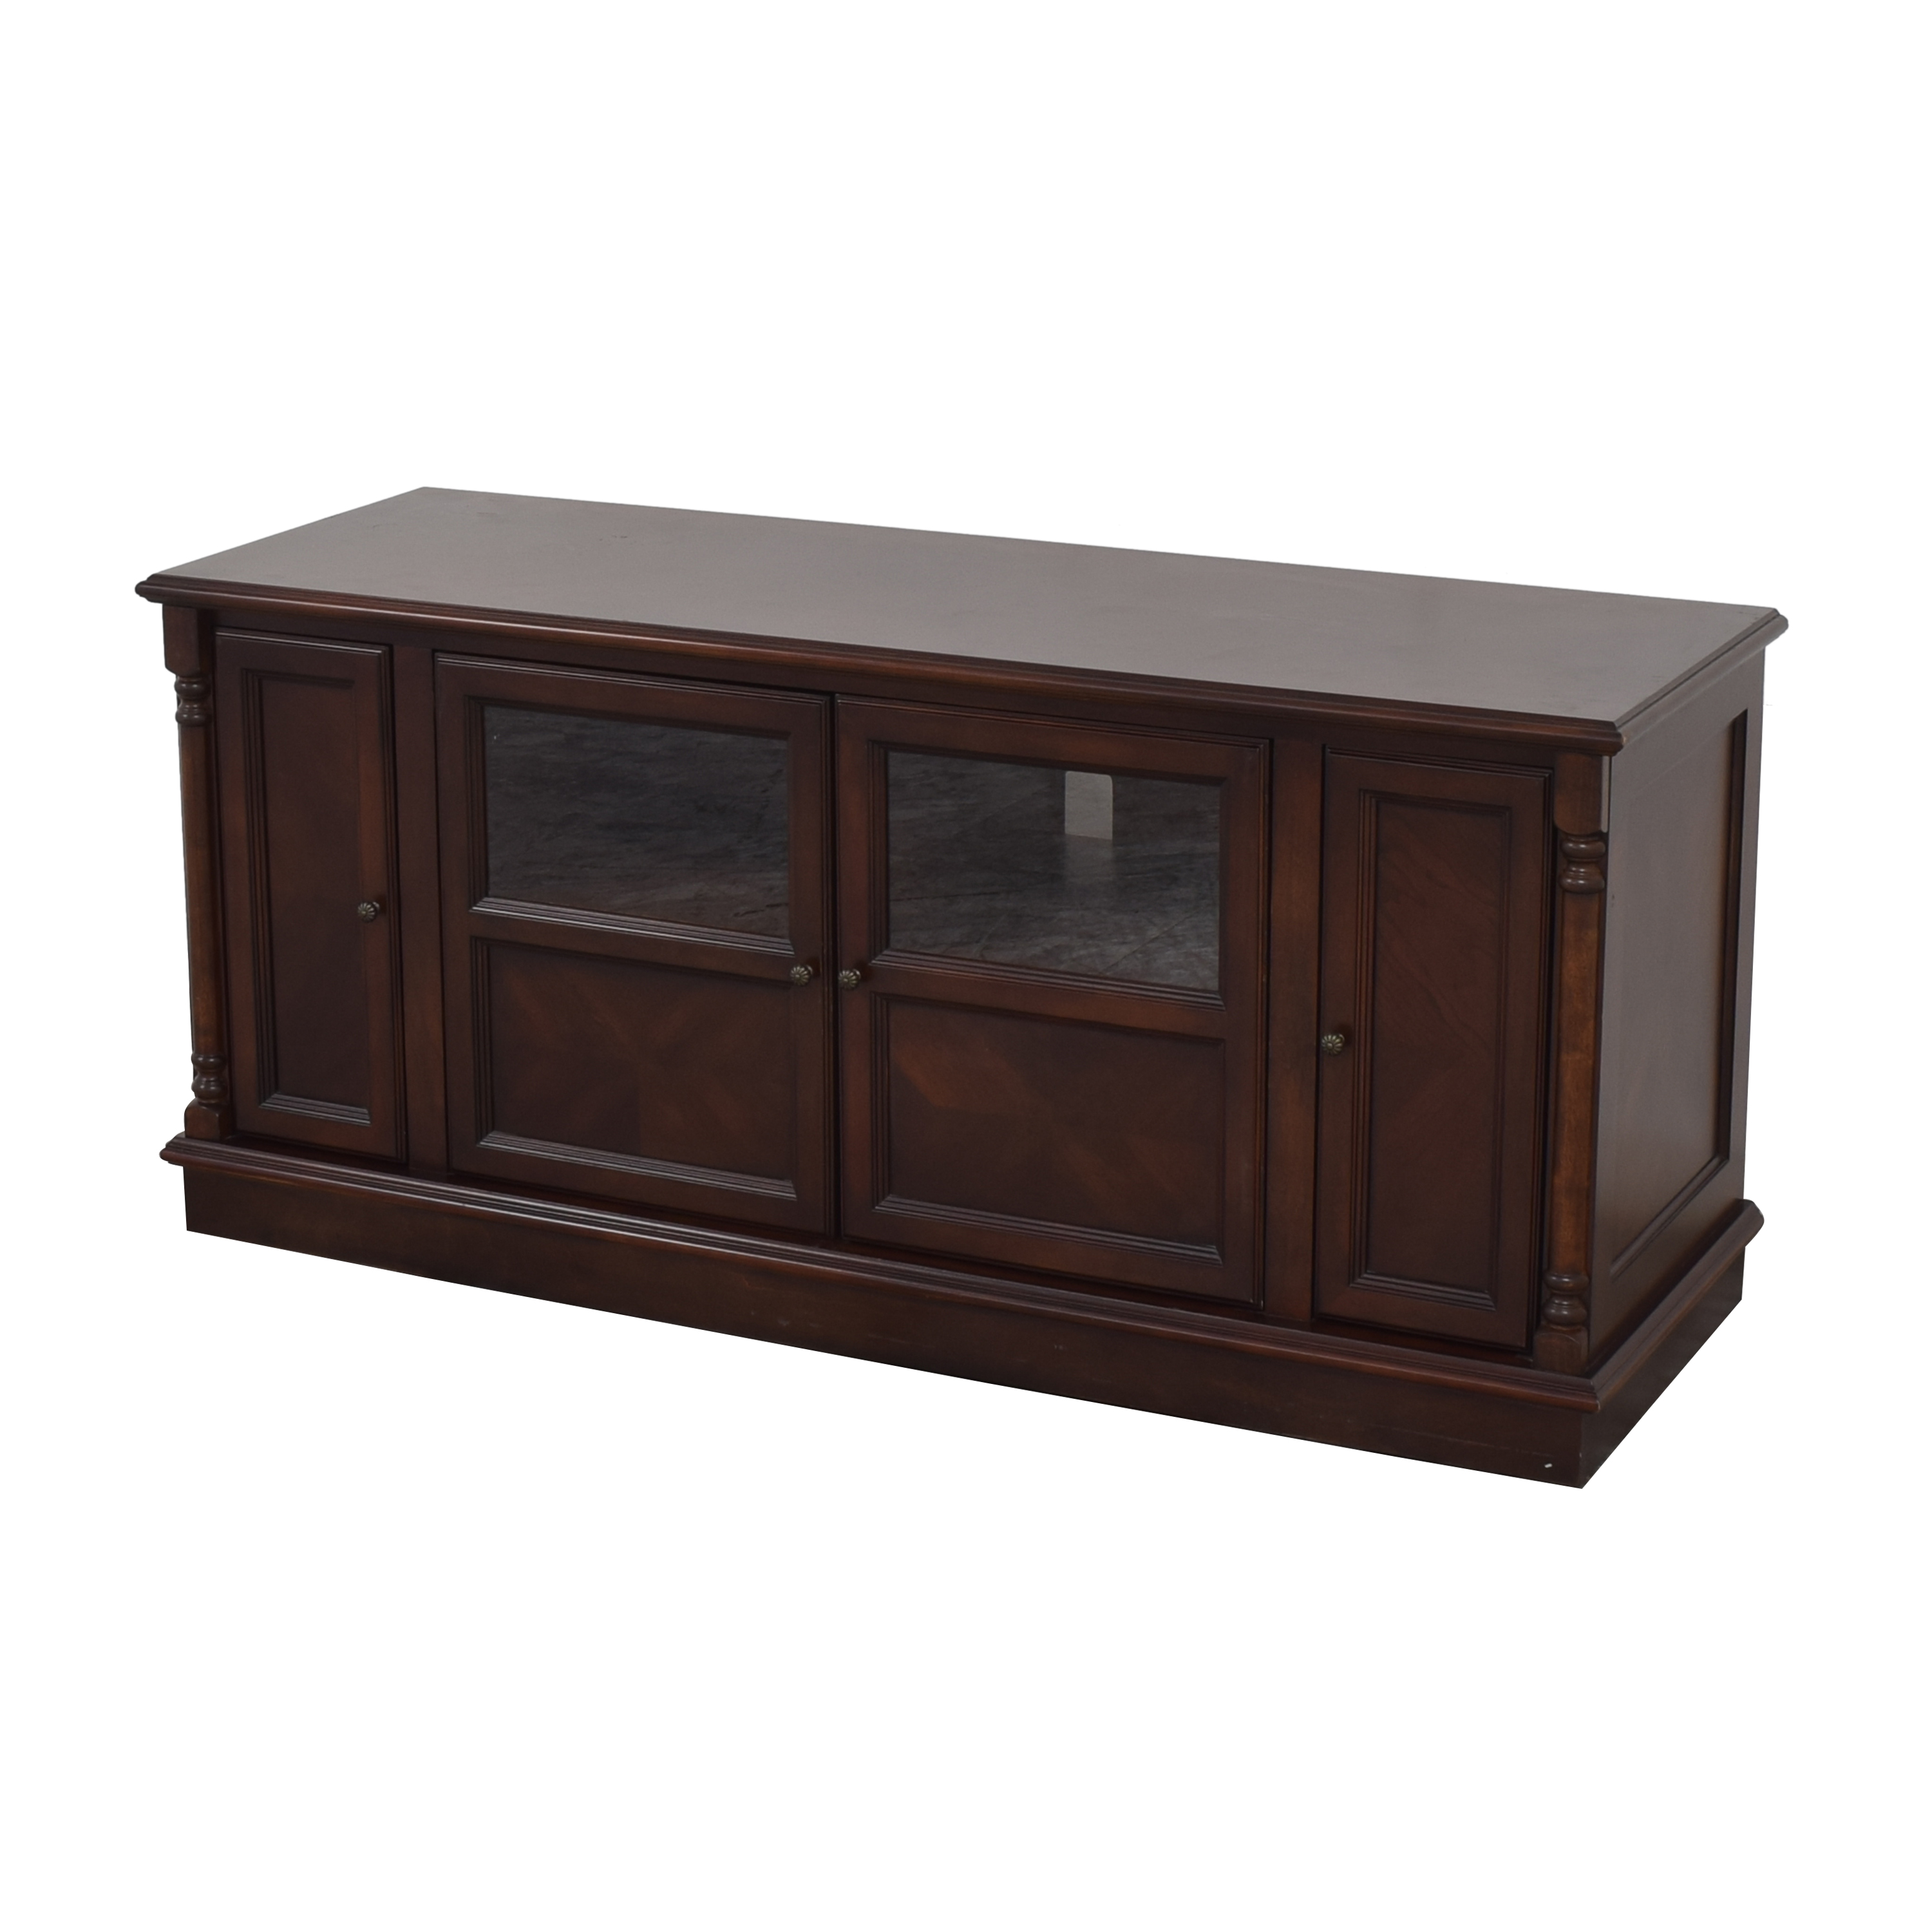 shop Raymour & Flanigan Raymour & Flanigan Media Console online